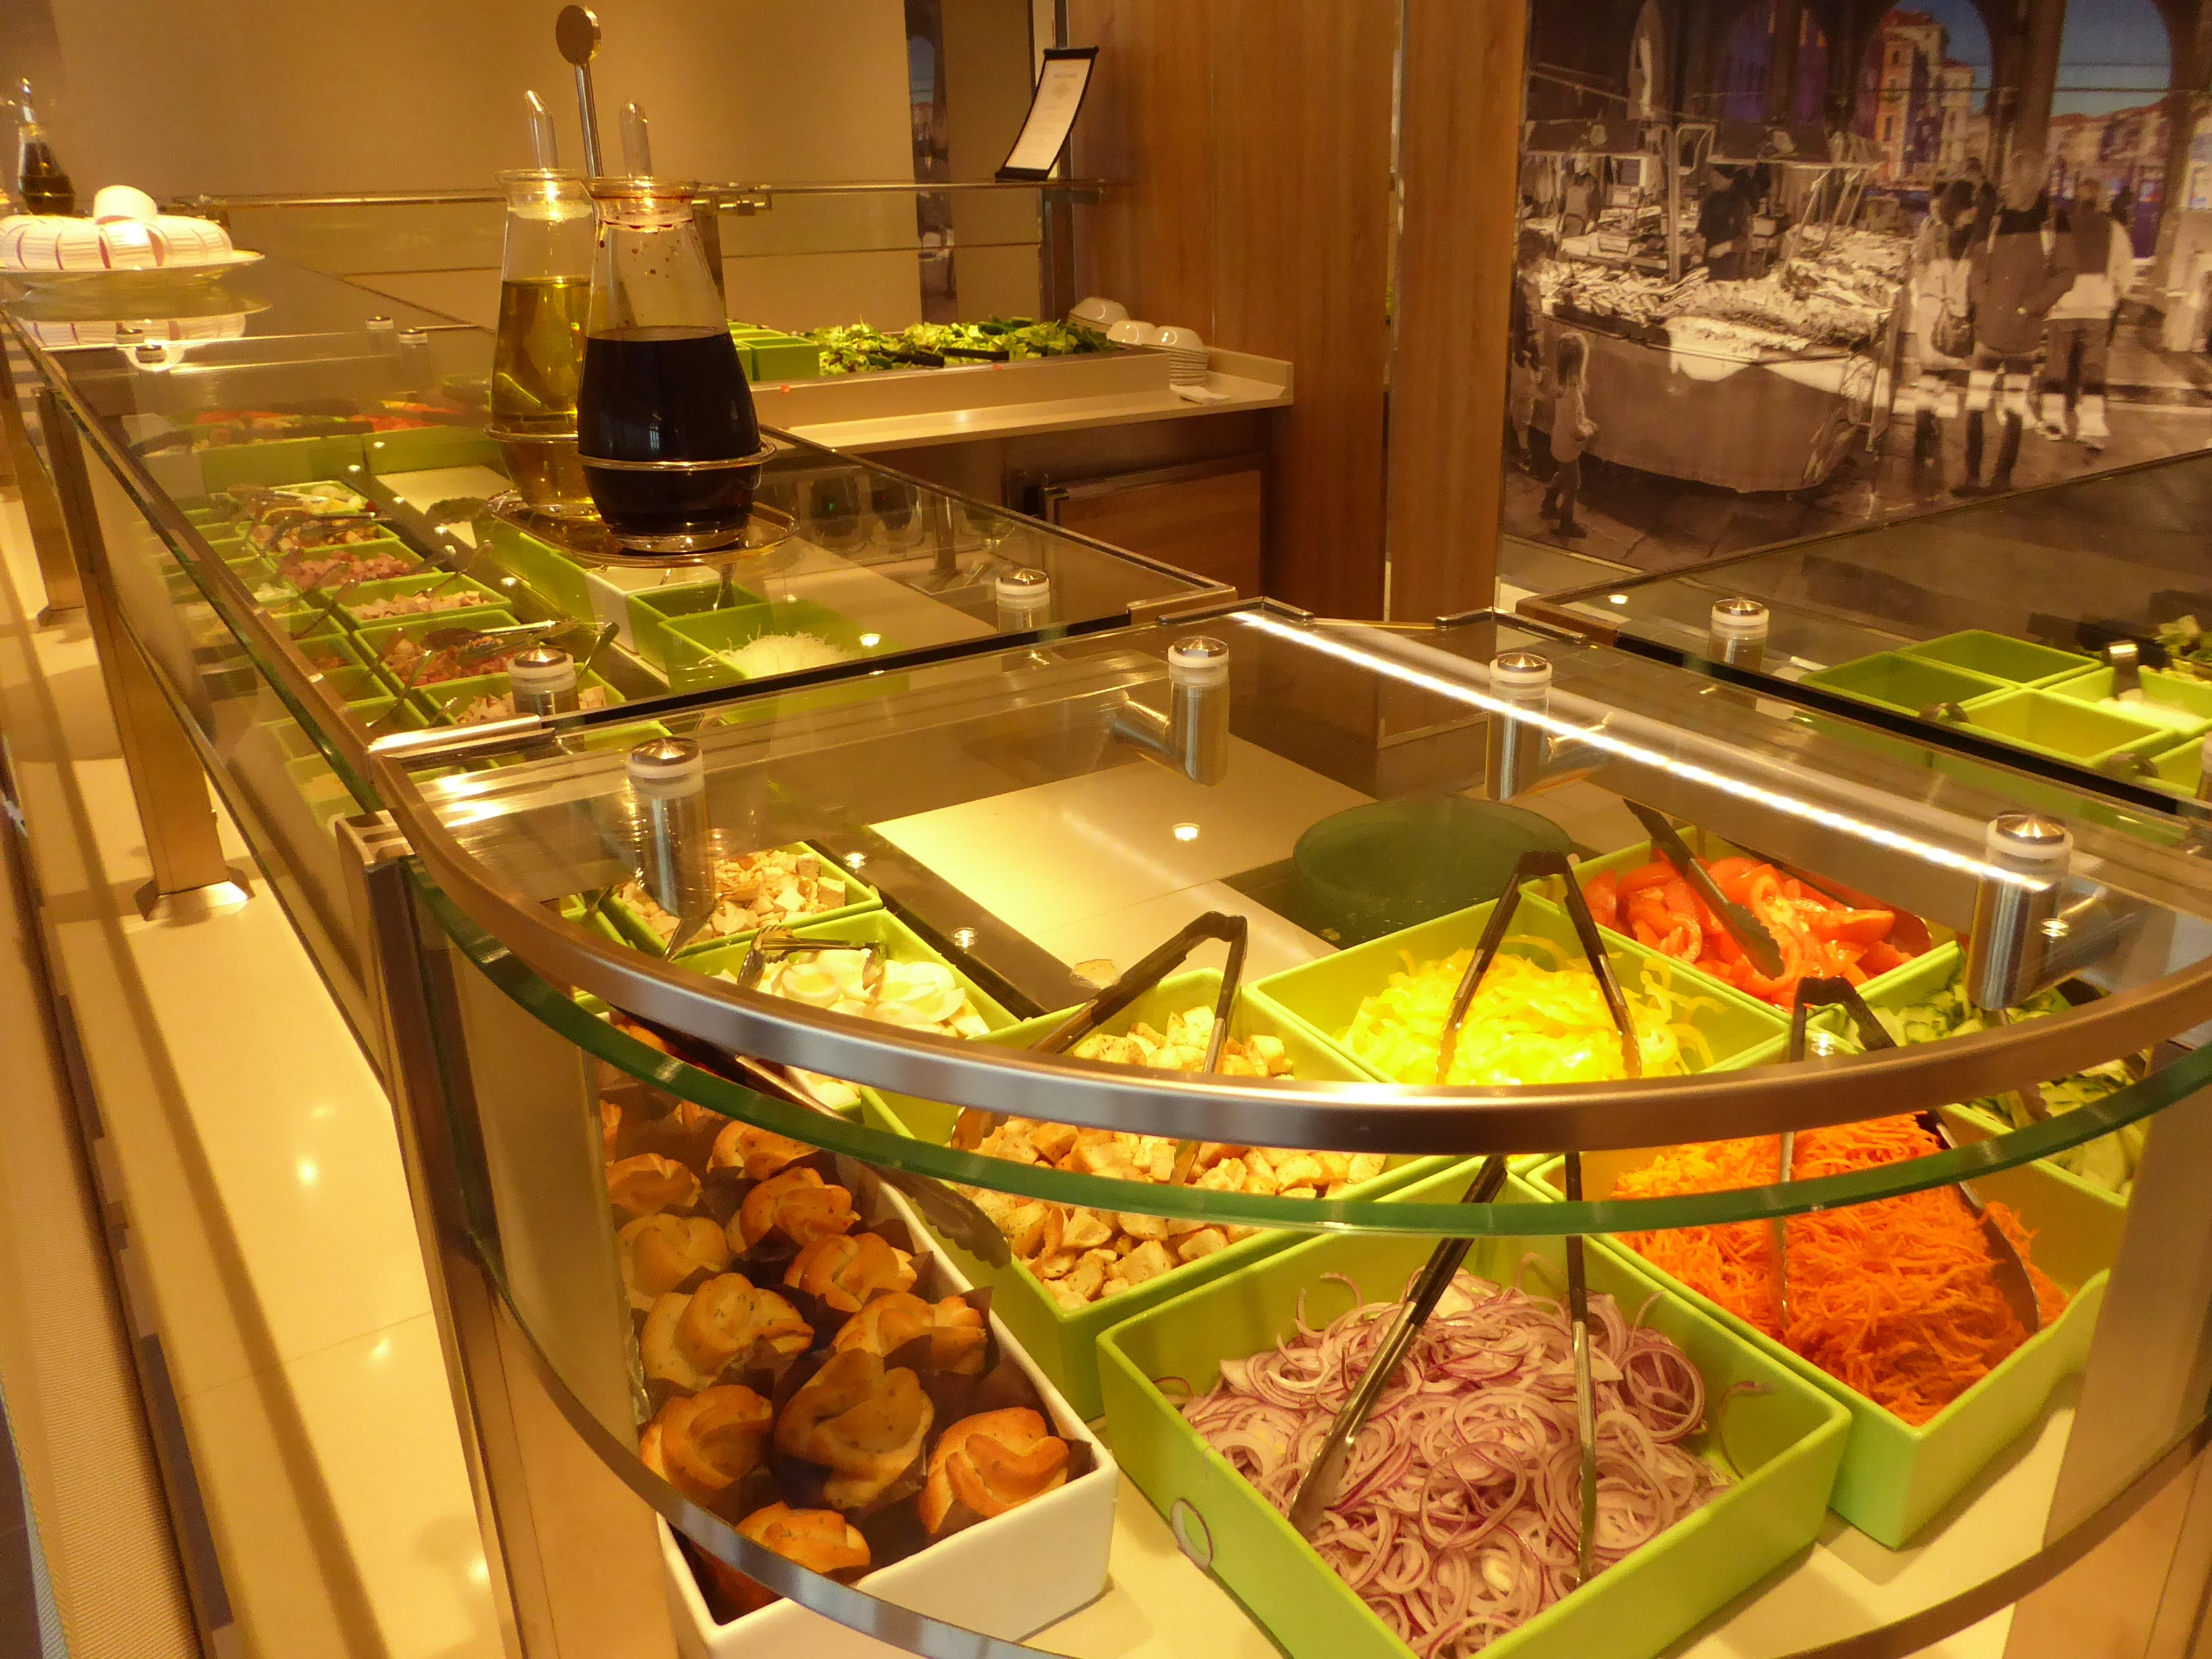 One of the best at sea, the Salad Bar section of the Lido Market has a wide choice of freshly prepared ingredients.